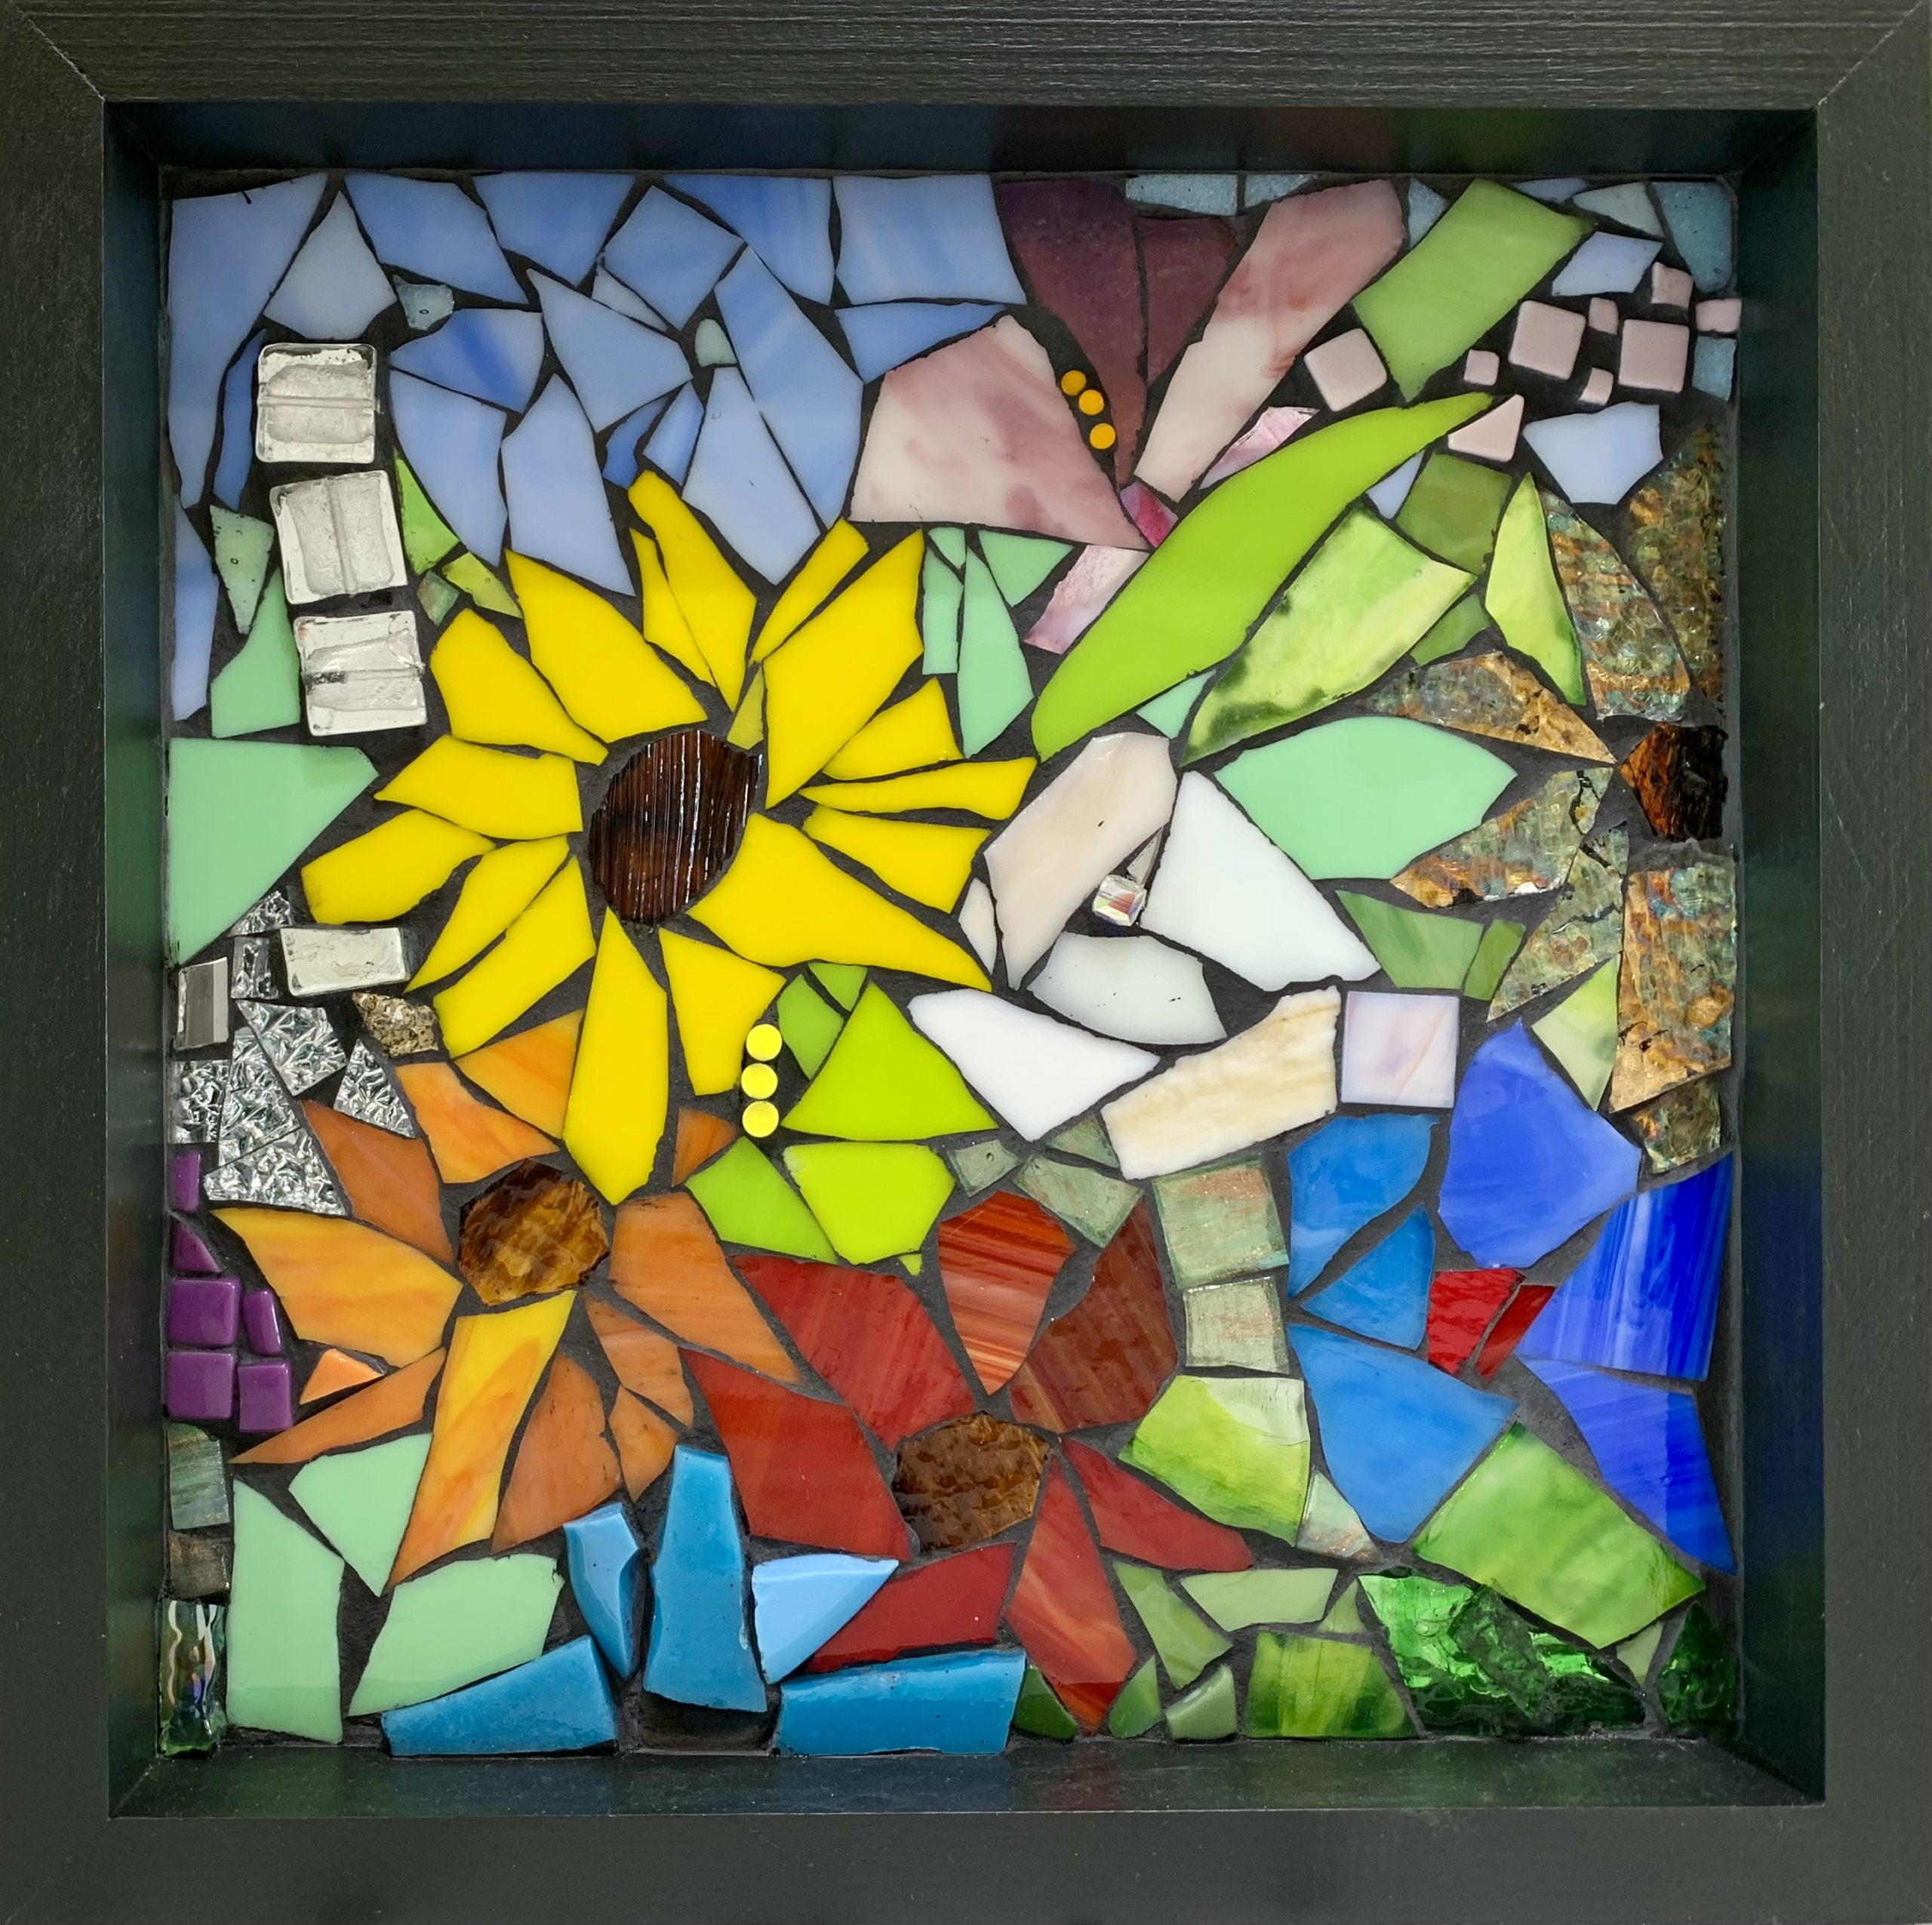 Collapsed in Sunbeams, stained glass mosaic by Kimberly Kiel | Effusion Art Gallery + Cast Glass Studio, Invermere BC